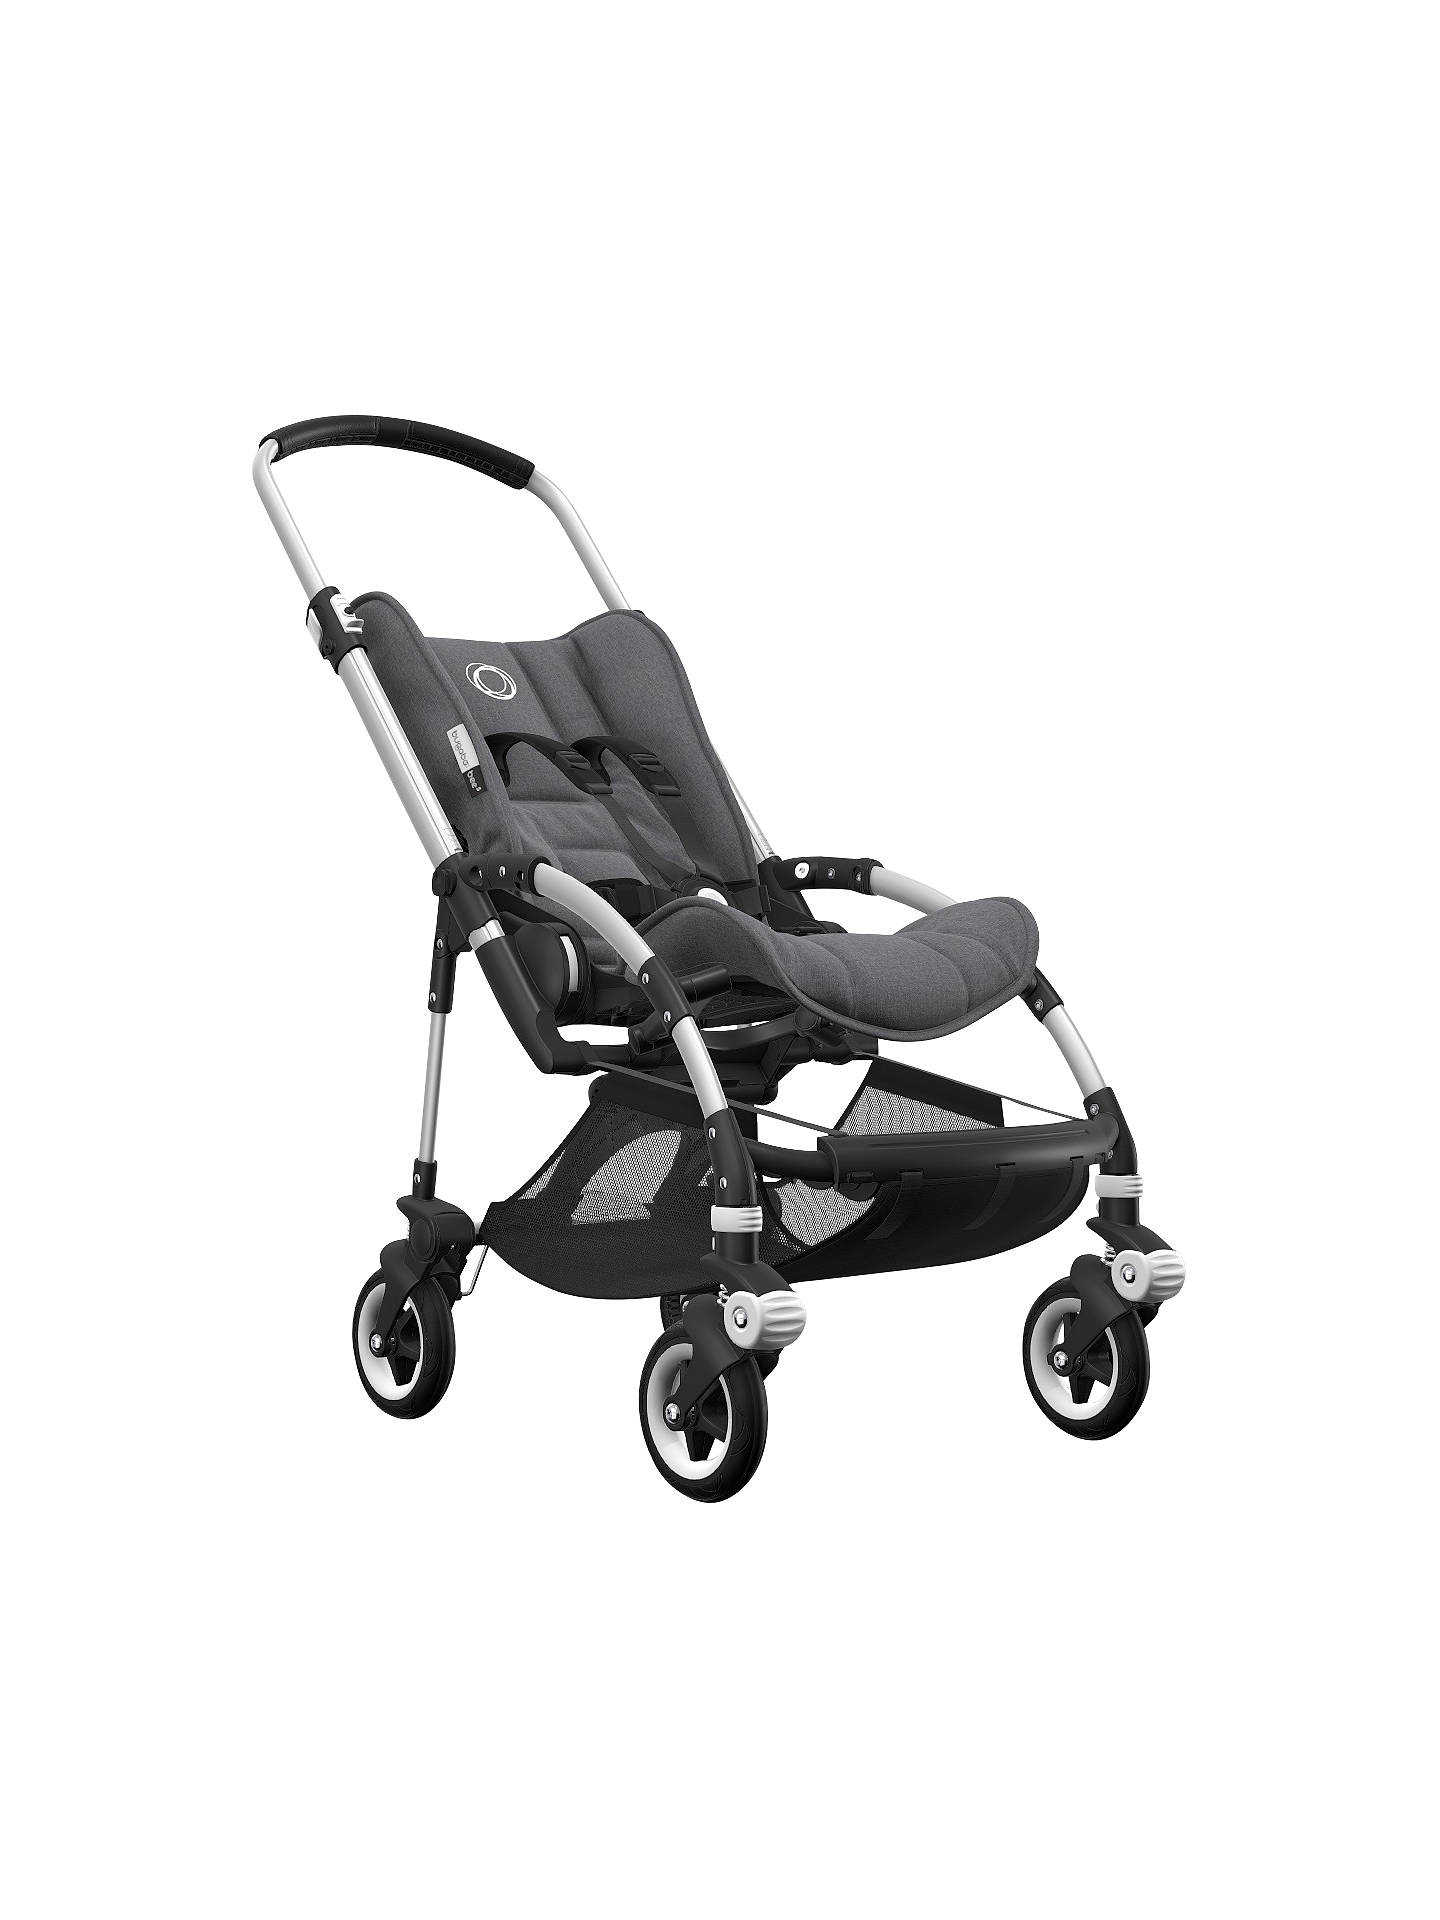 BuyBugaboo Bee5 Complete Pushchair, Aluminium with Black Handles and Grey Melange Fabric Online at johnlewis.com